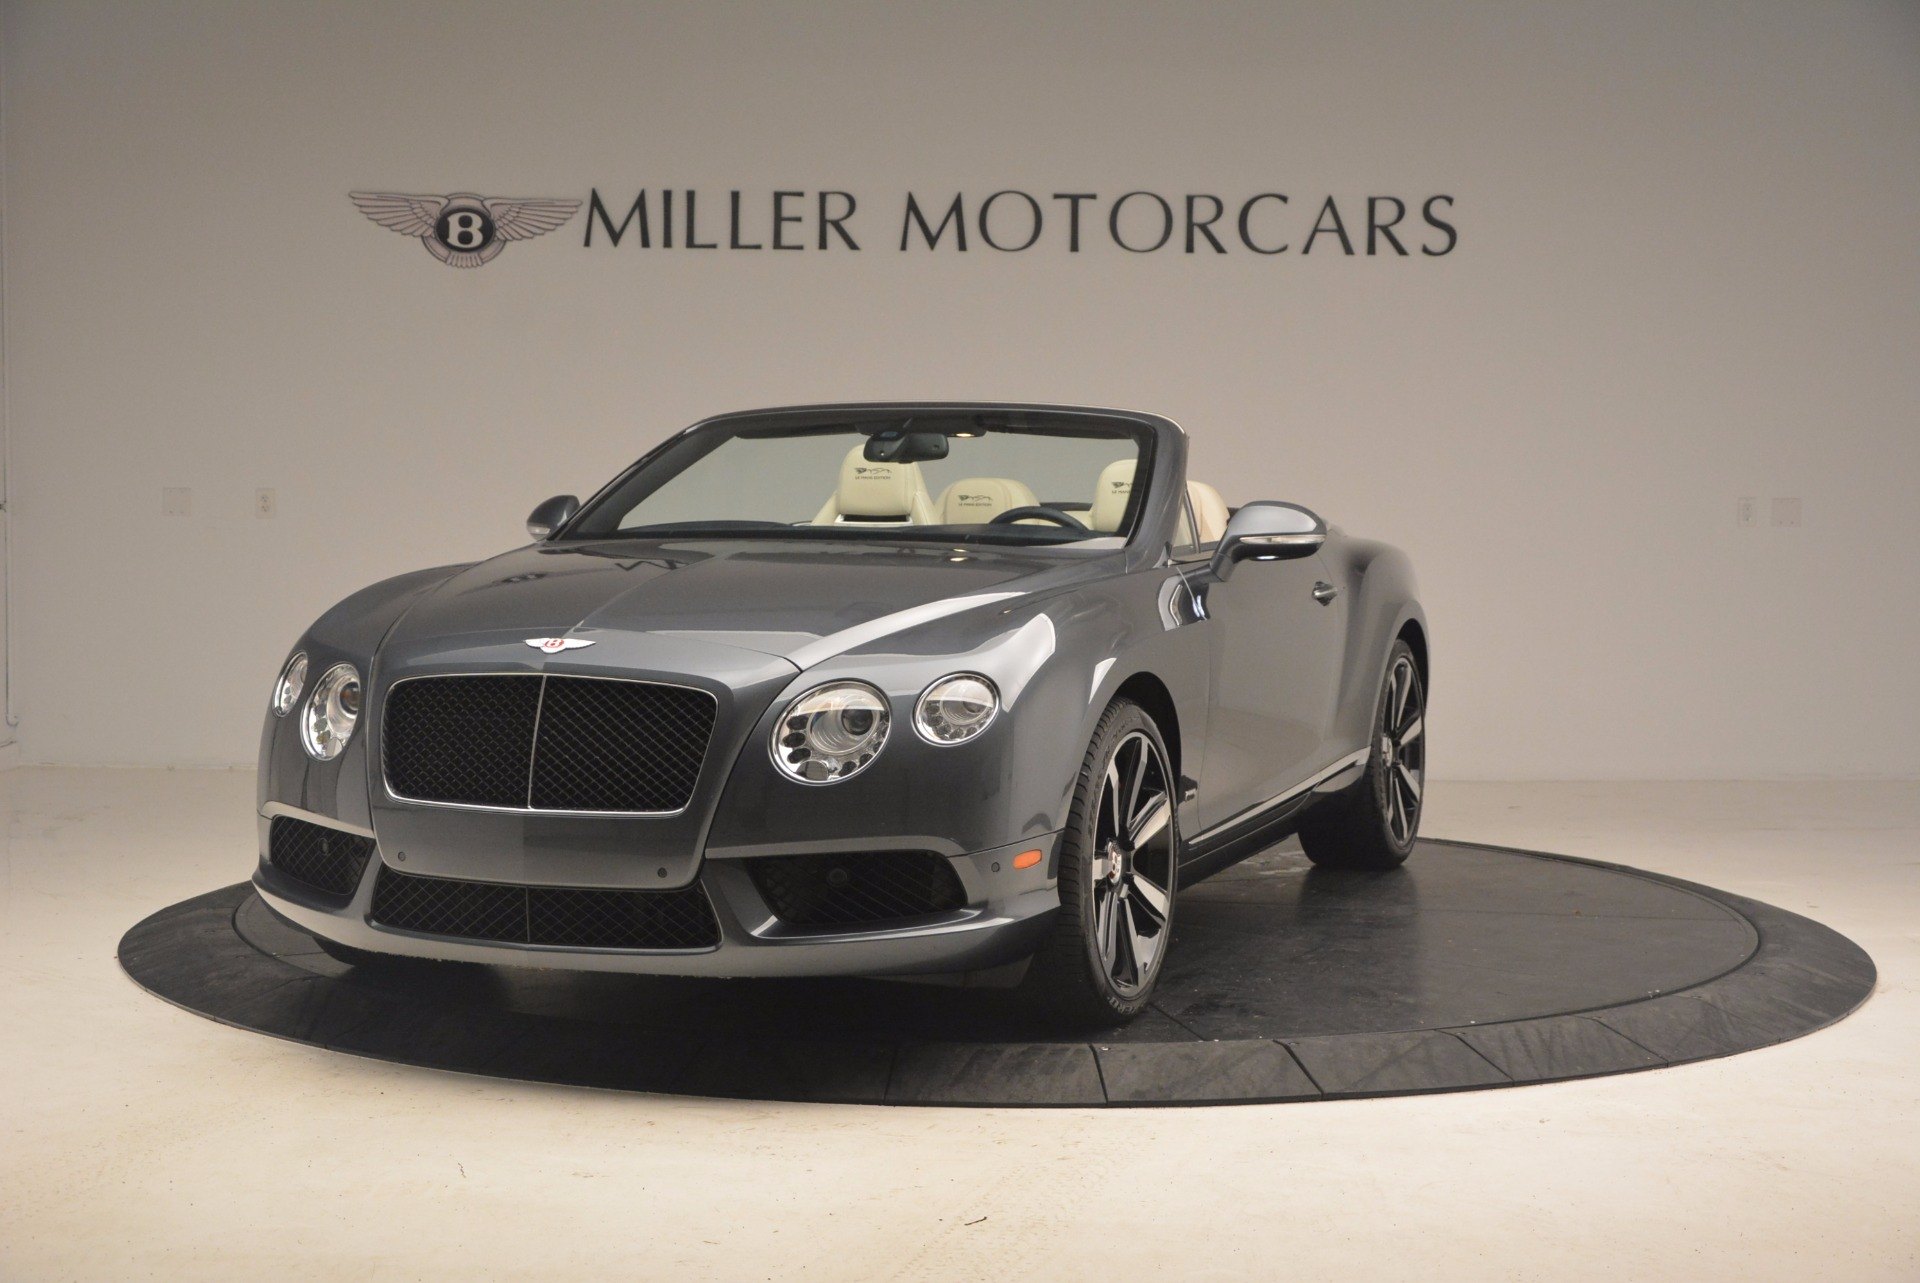 Used 2013 Bentley Continental GT V8 Le Mans Edition, 1 of 48 for sale Sold at Pagani of Greenwich in Greenwich CT 06830 1